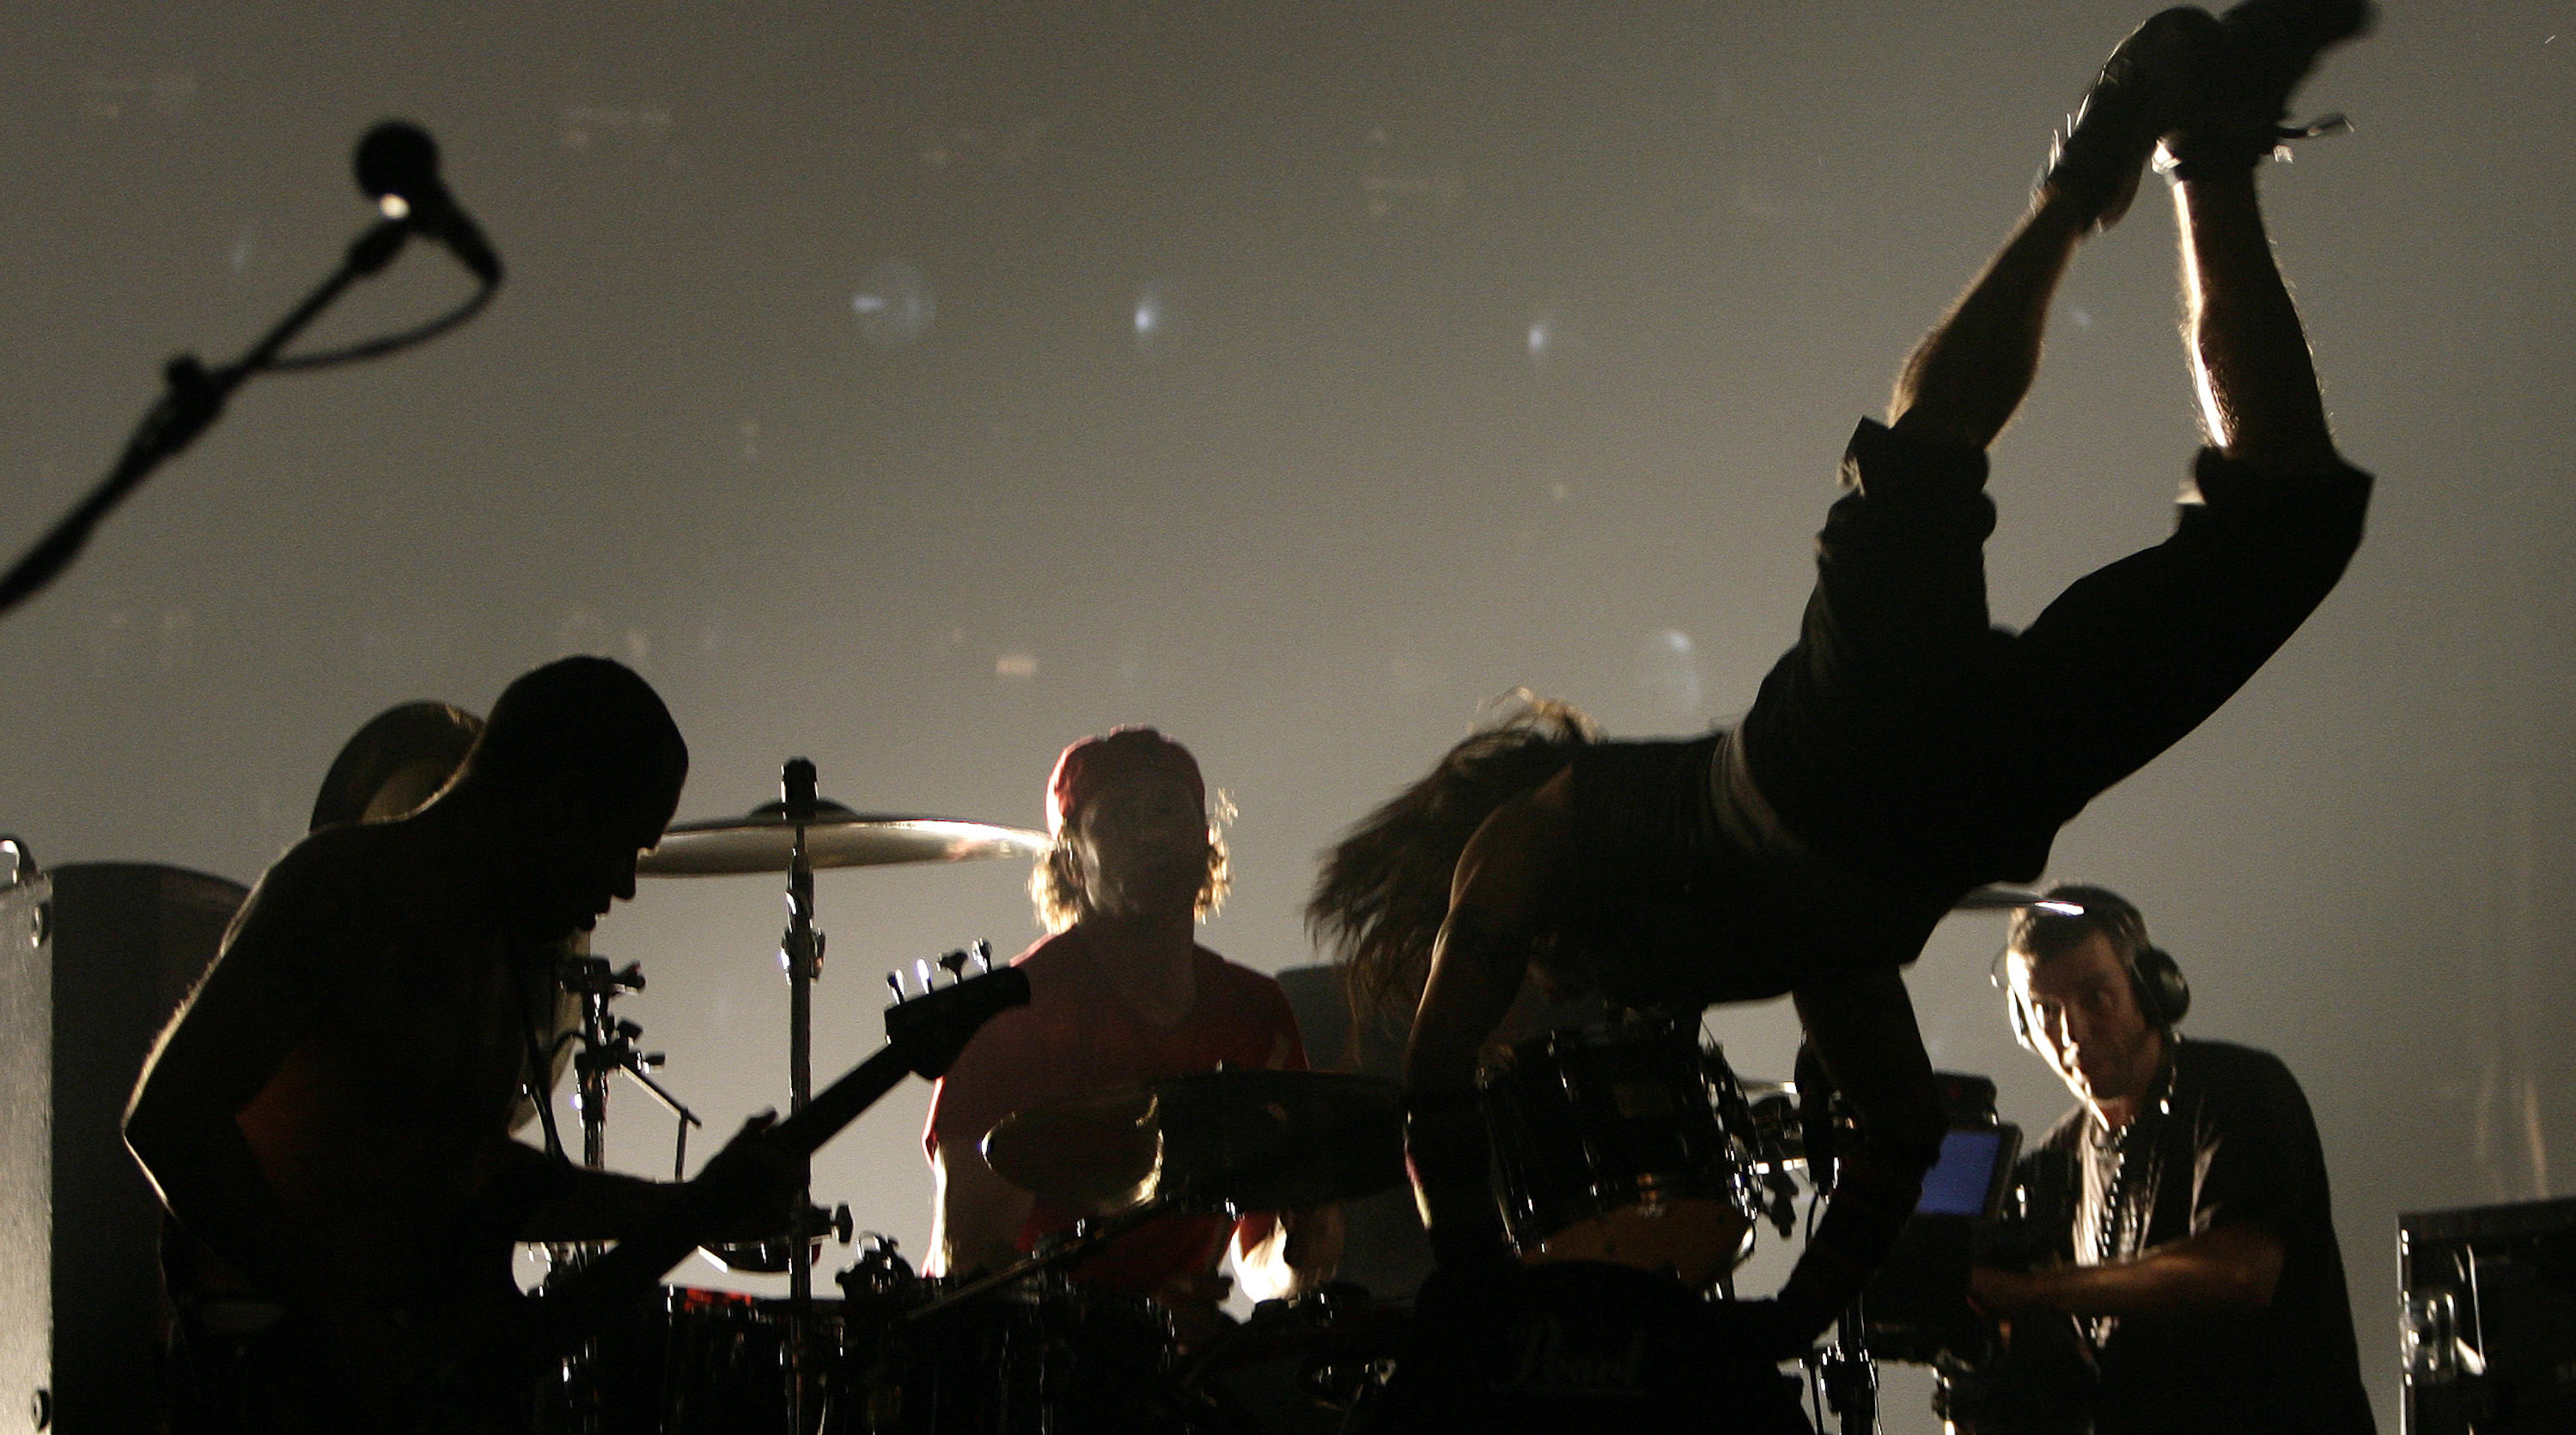 Red Hot Chili Peppers perform at the Brit Awards